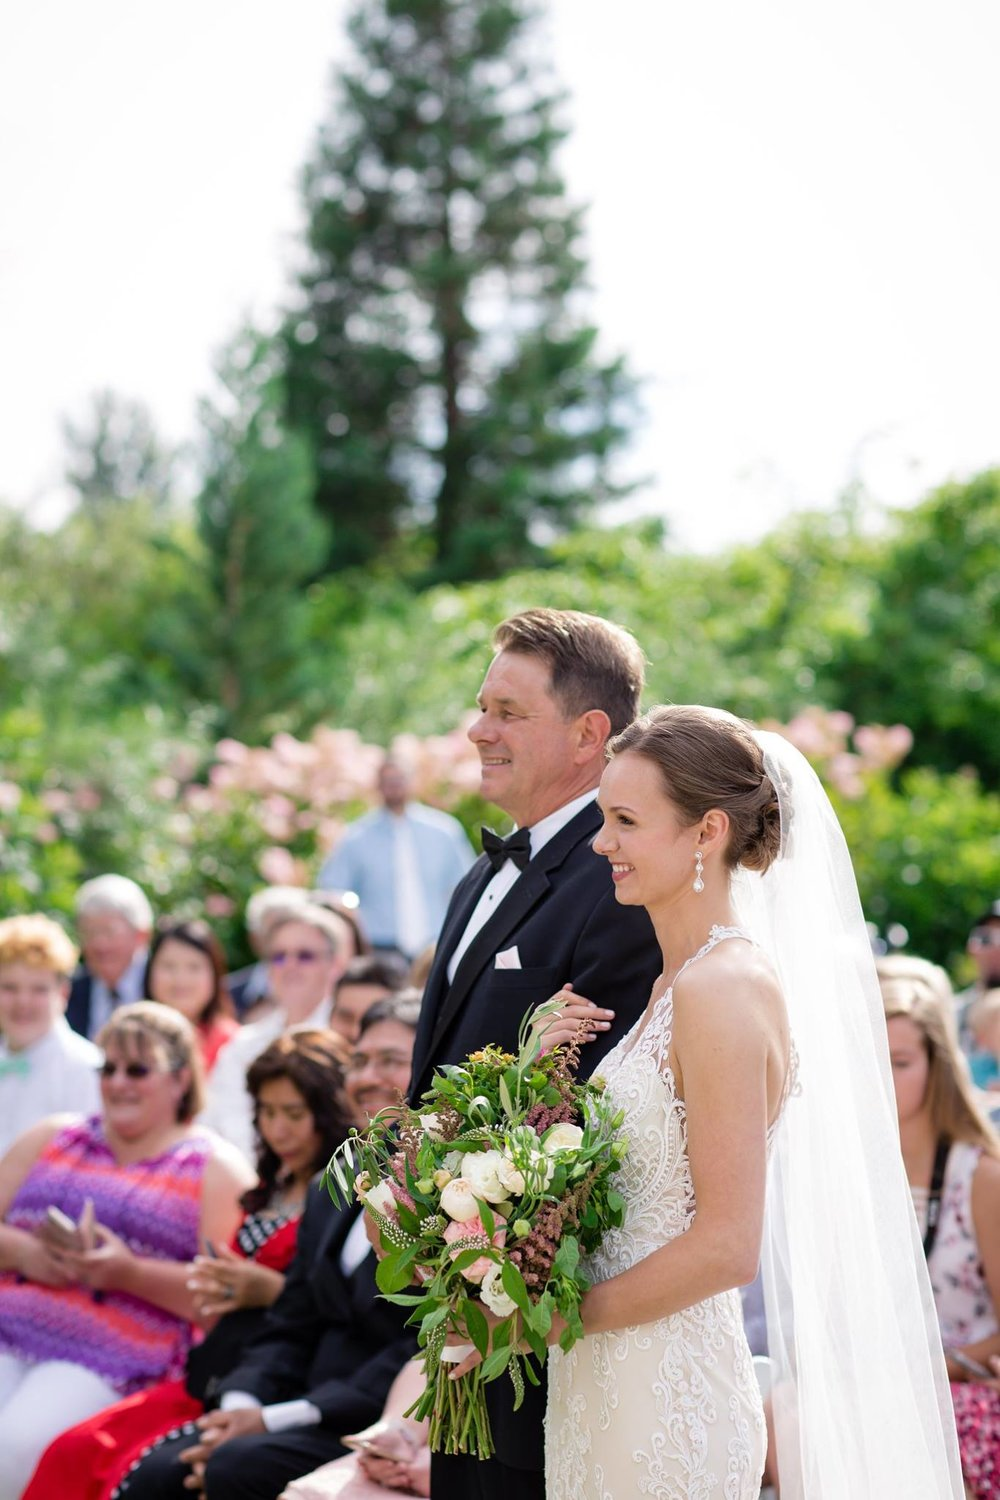 Edgefield_Wedding_Portland_Bride_griffineventmanagement.jpg